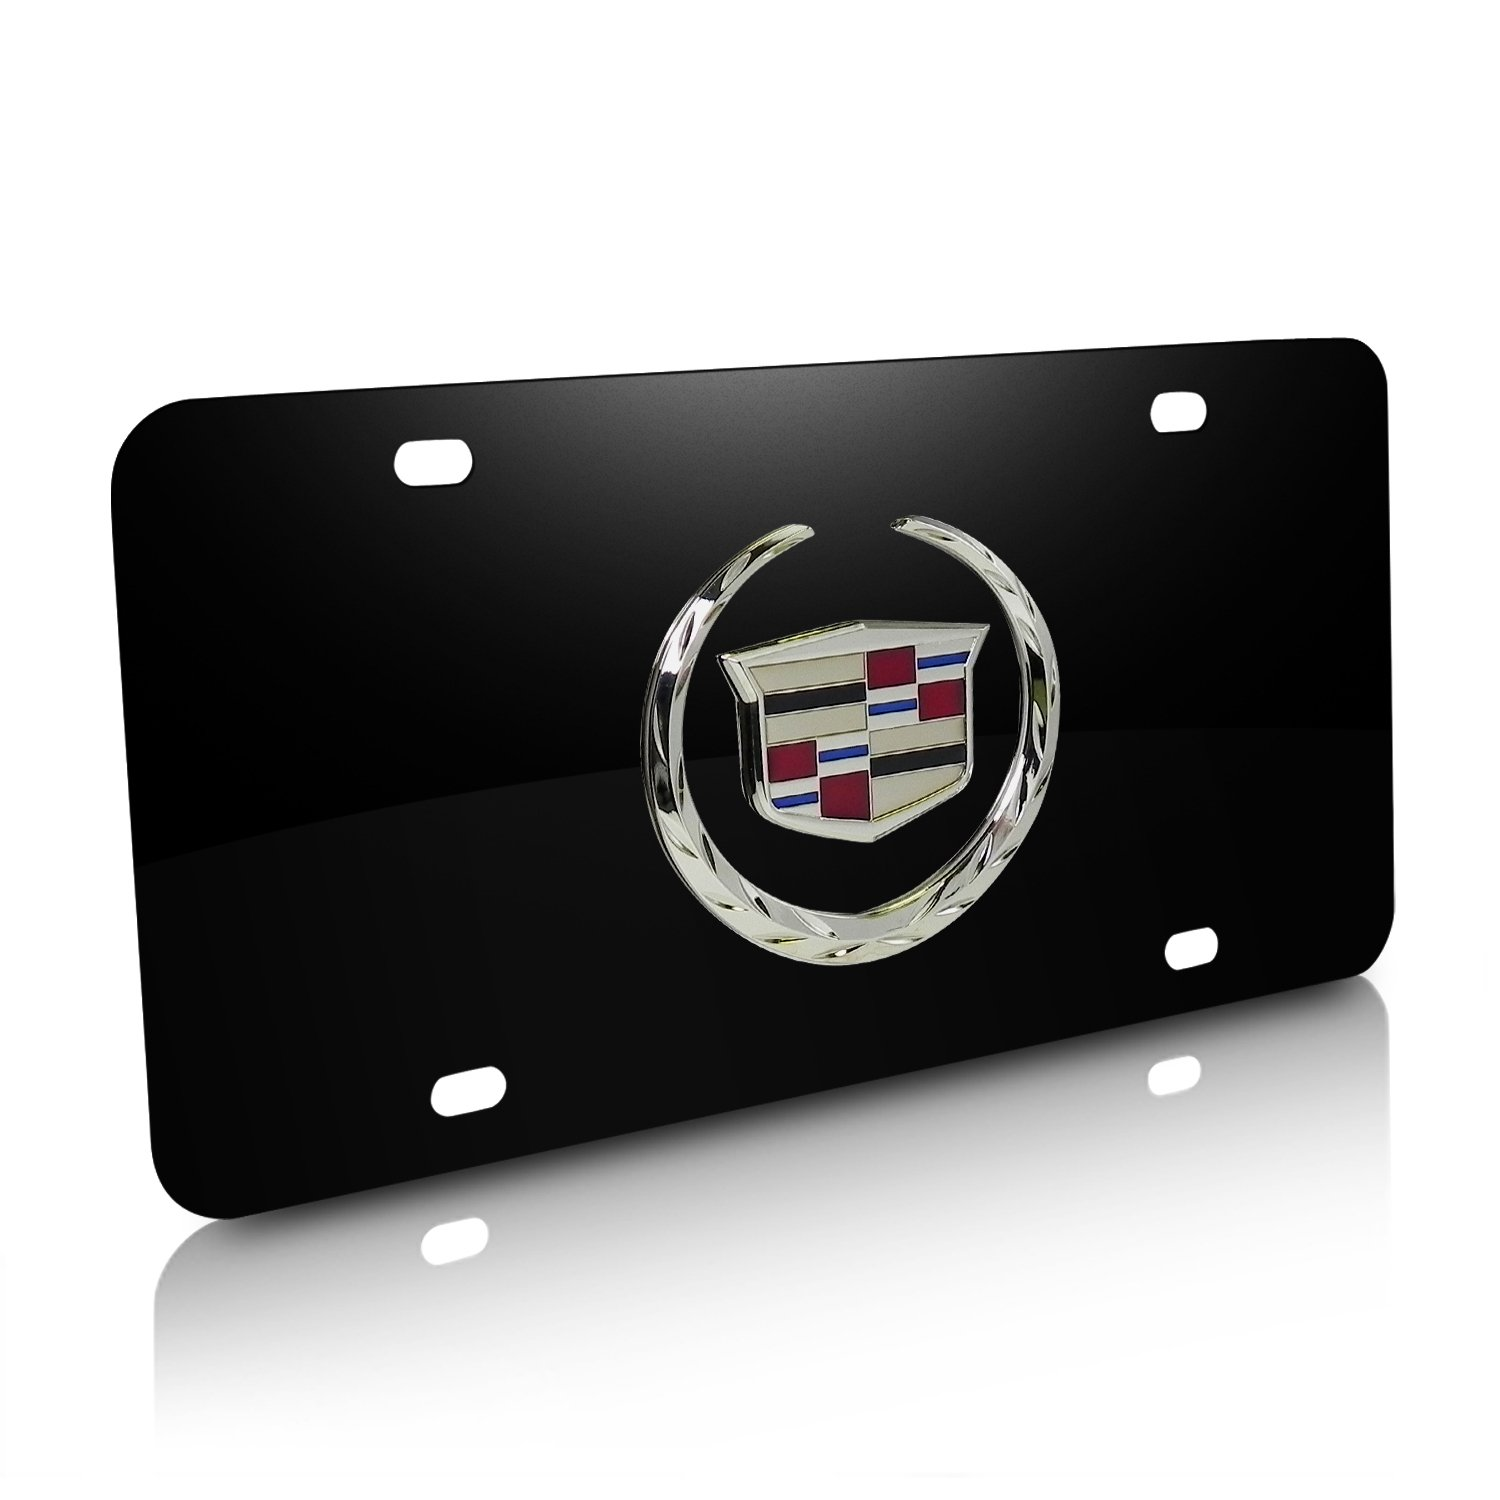 iPick Image Cadillac 3D Logo Black Stainless Steel License Plate